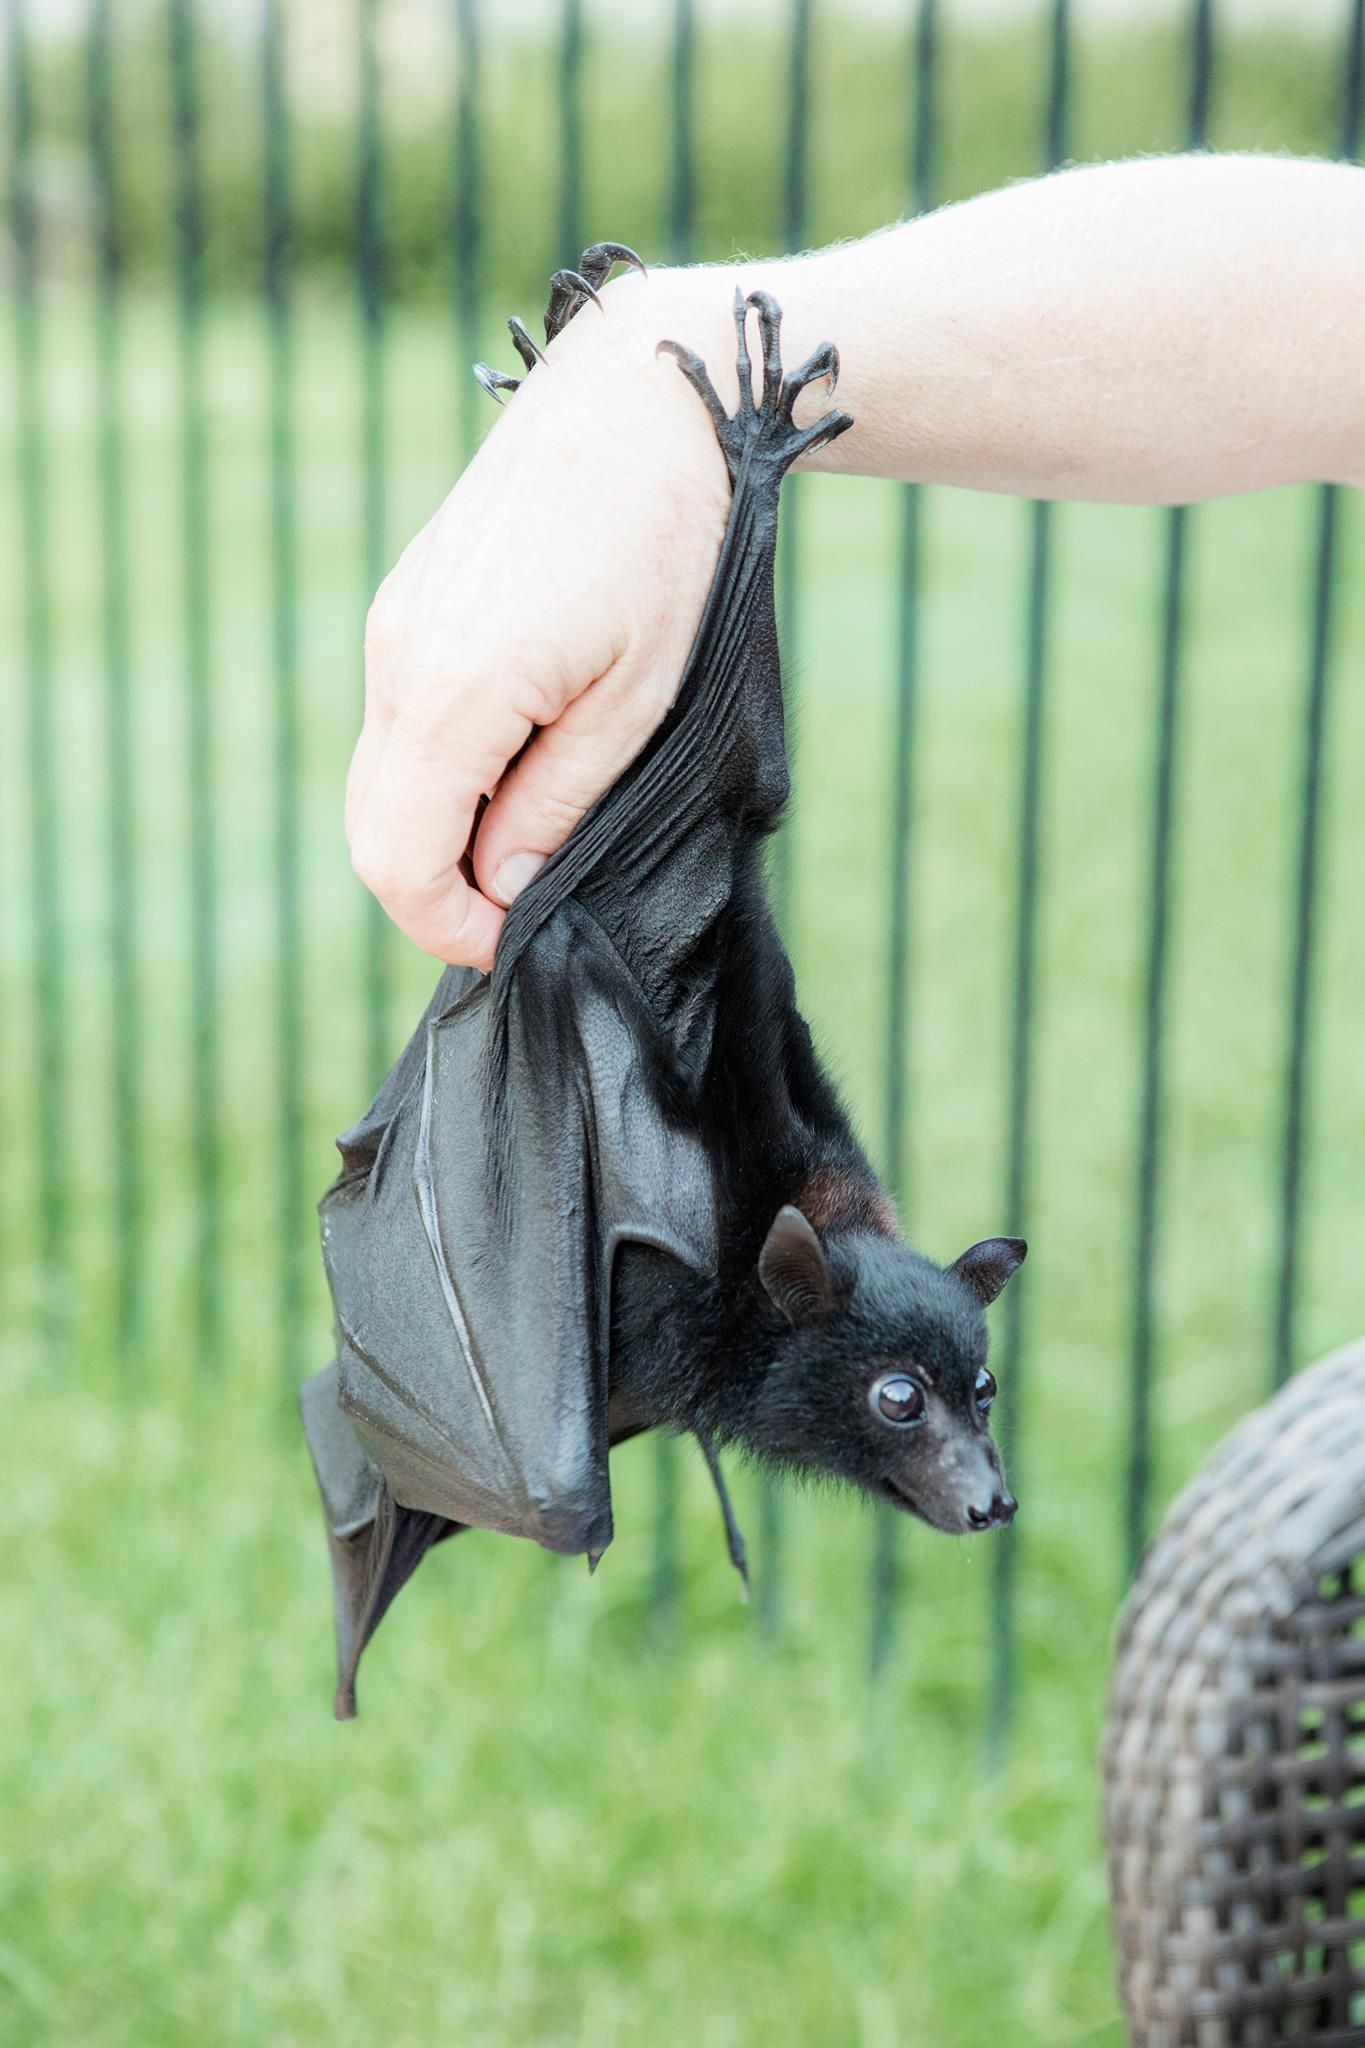 Australian Black Flying Fox? Are they the biggest bats